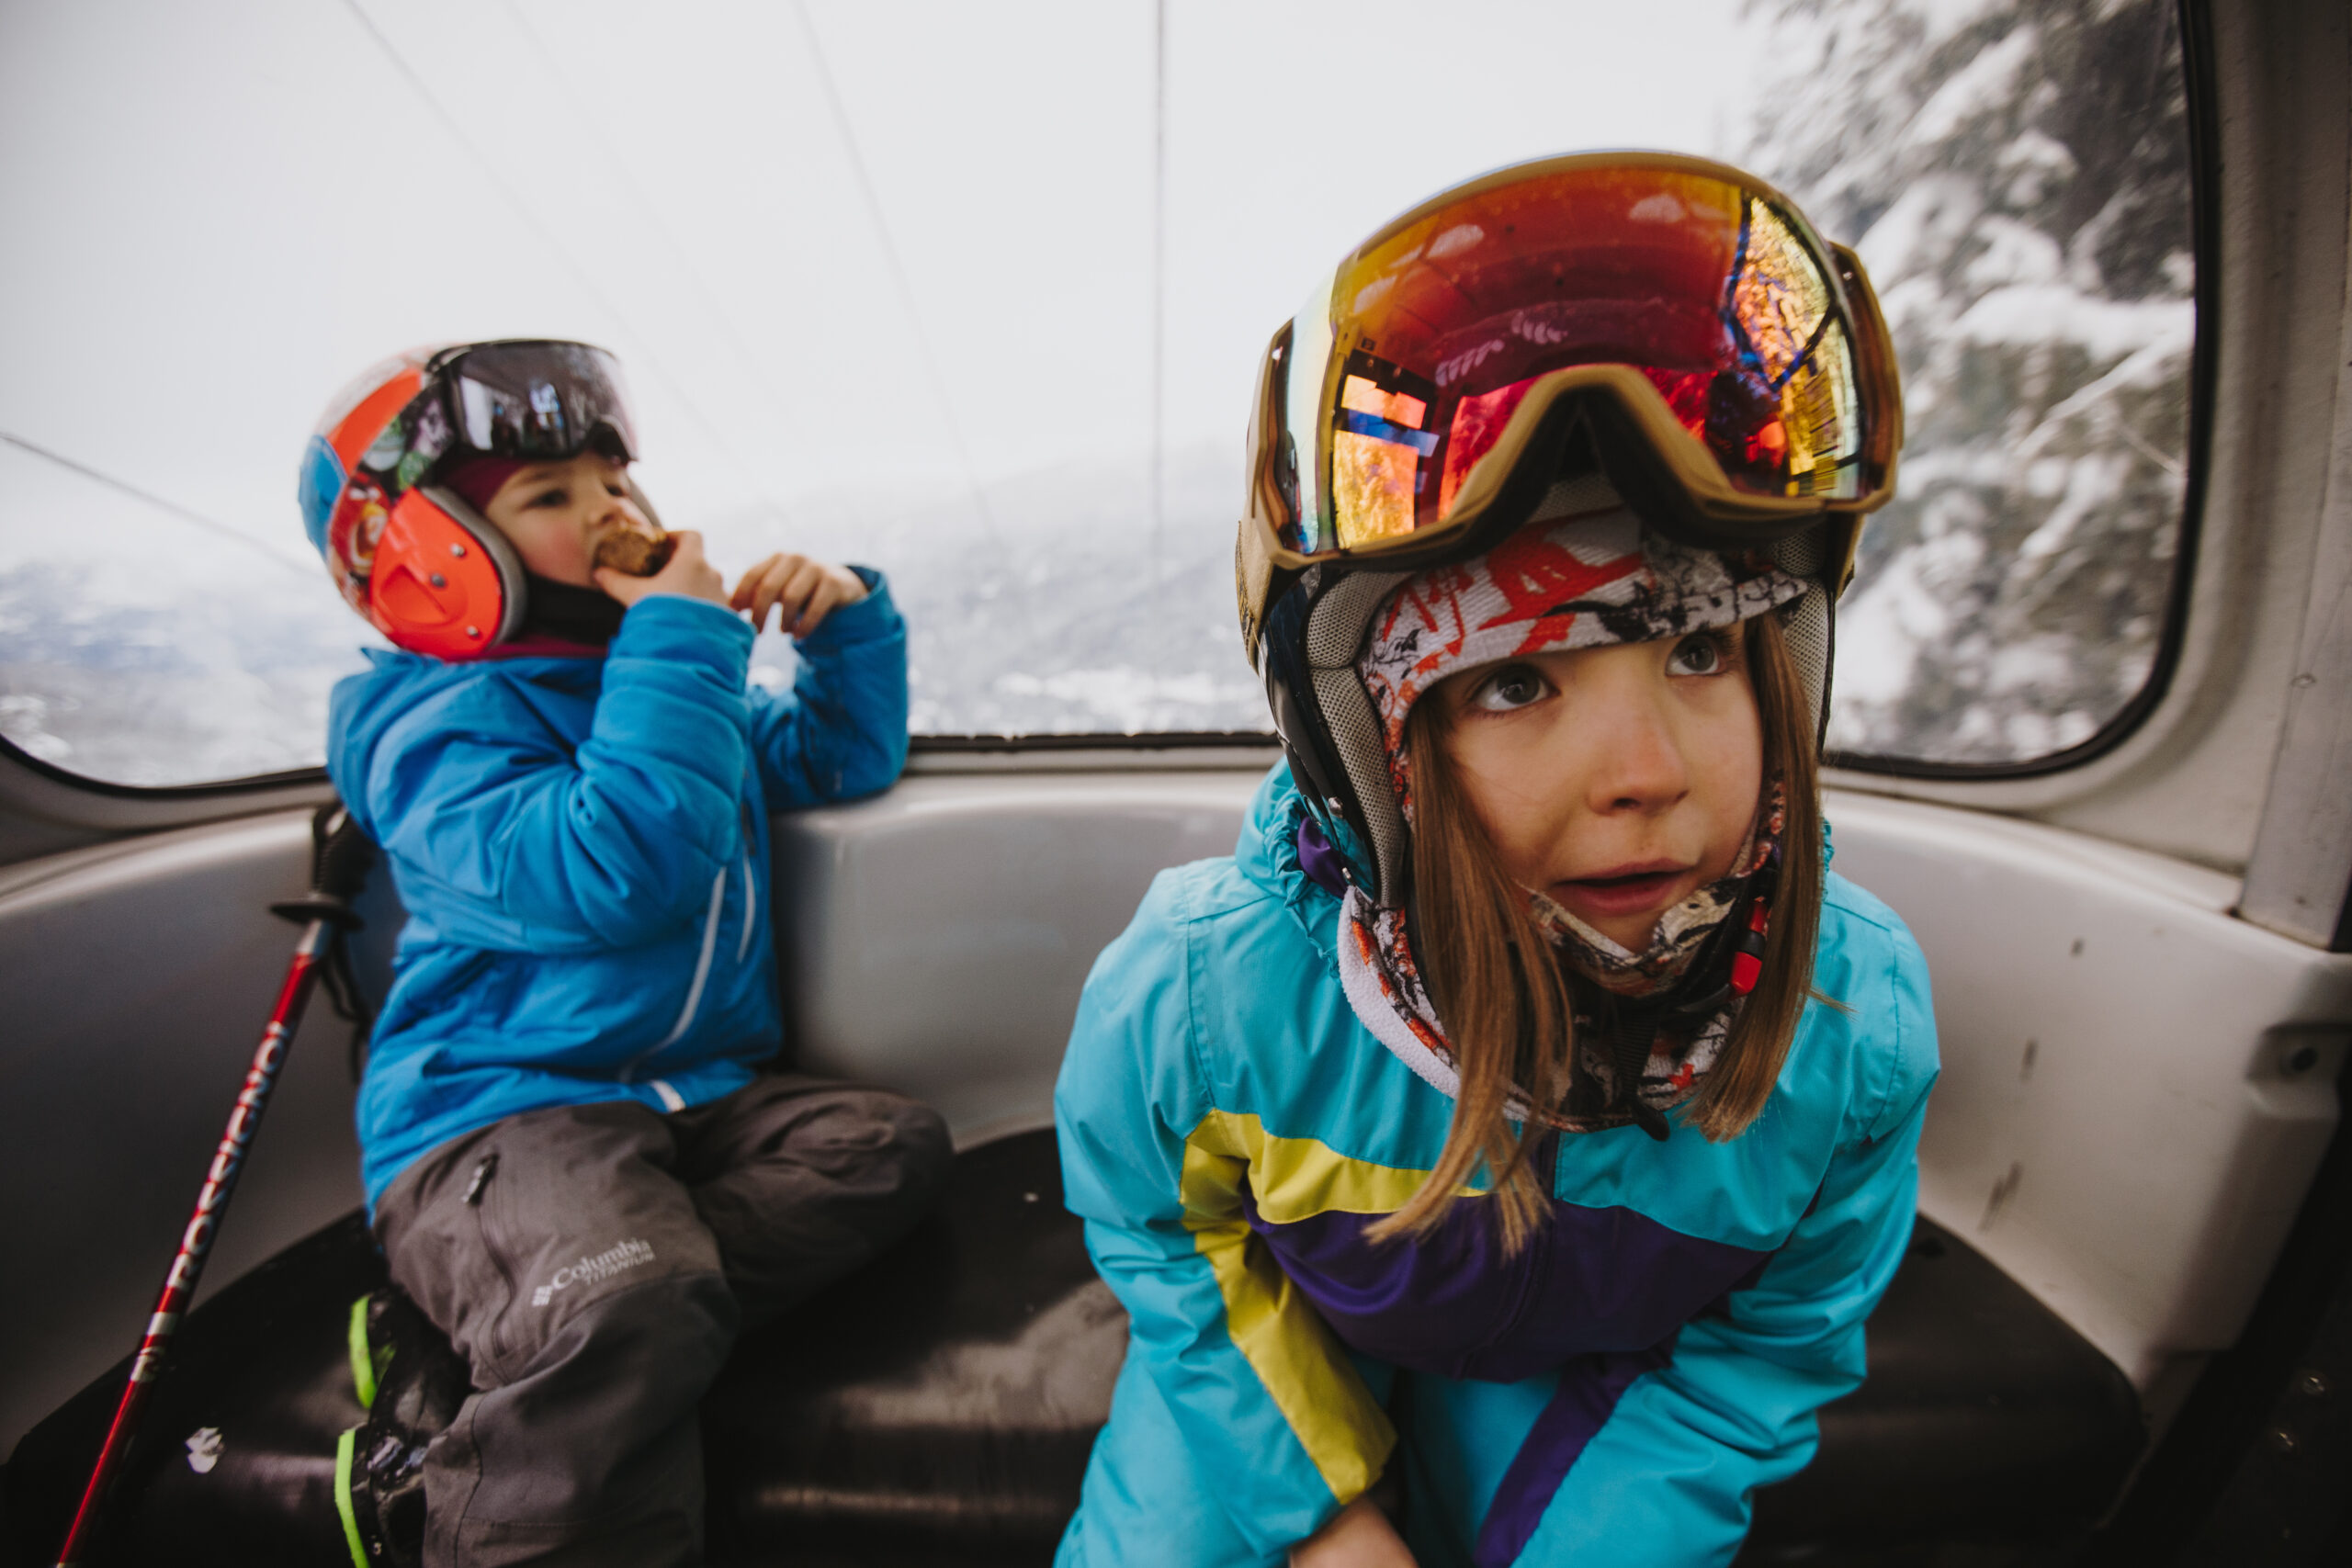 Vail Resorts - Chairlift